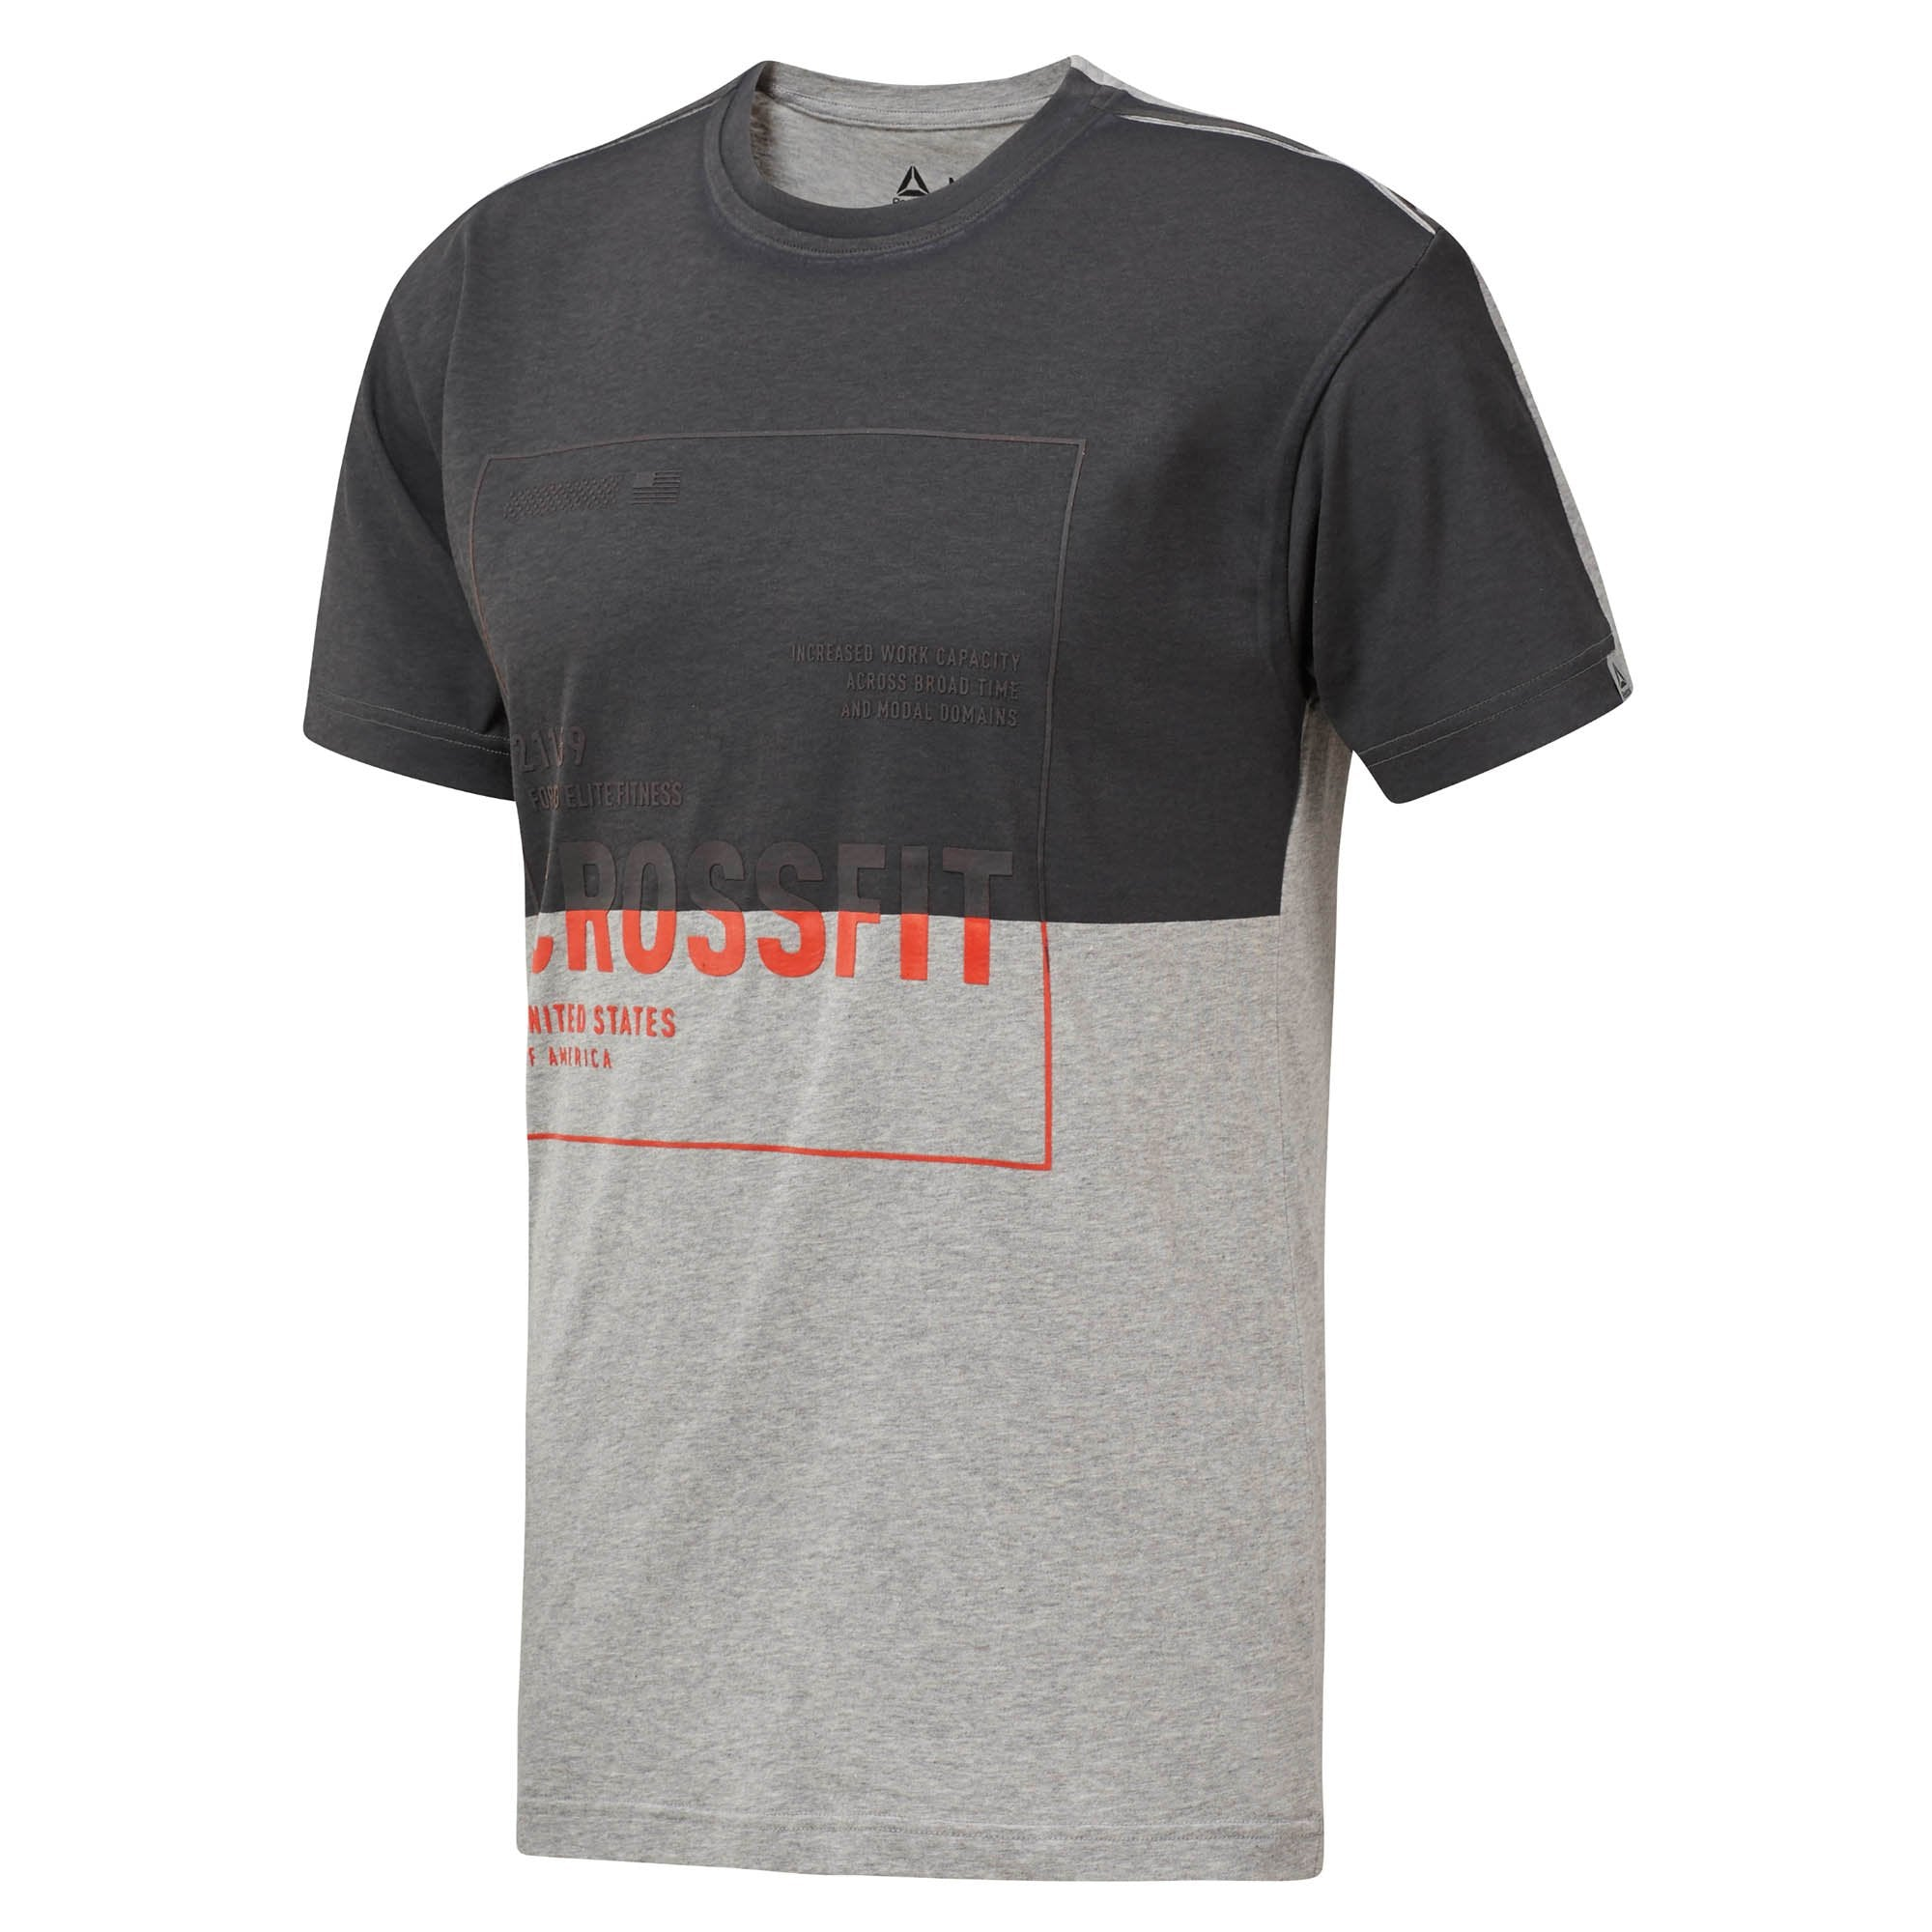 3f565a370 Buy Reebok Men Crossfit Tee, Medium Grey Heather Online in Singapore |  Royal Sporting House